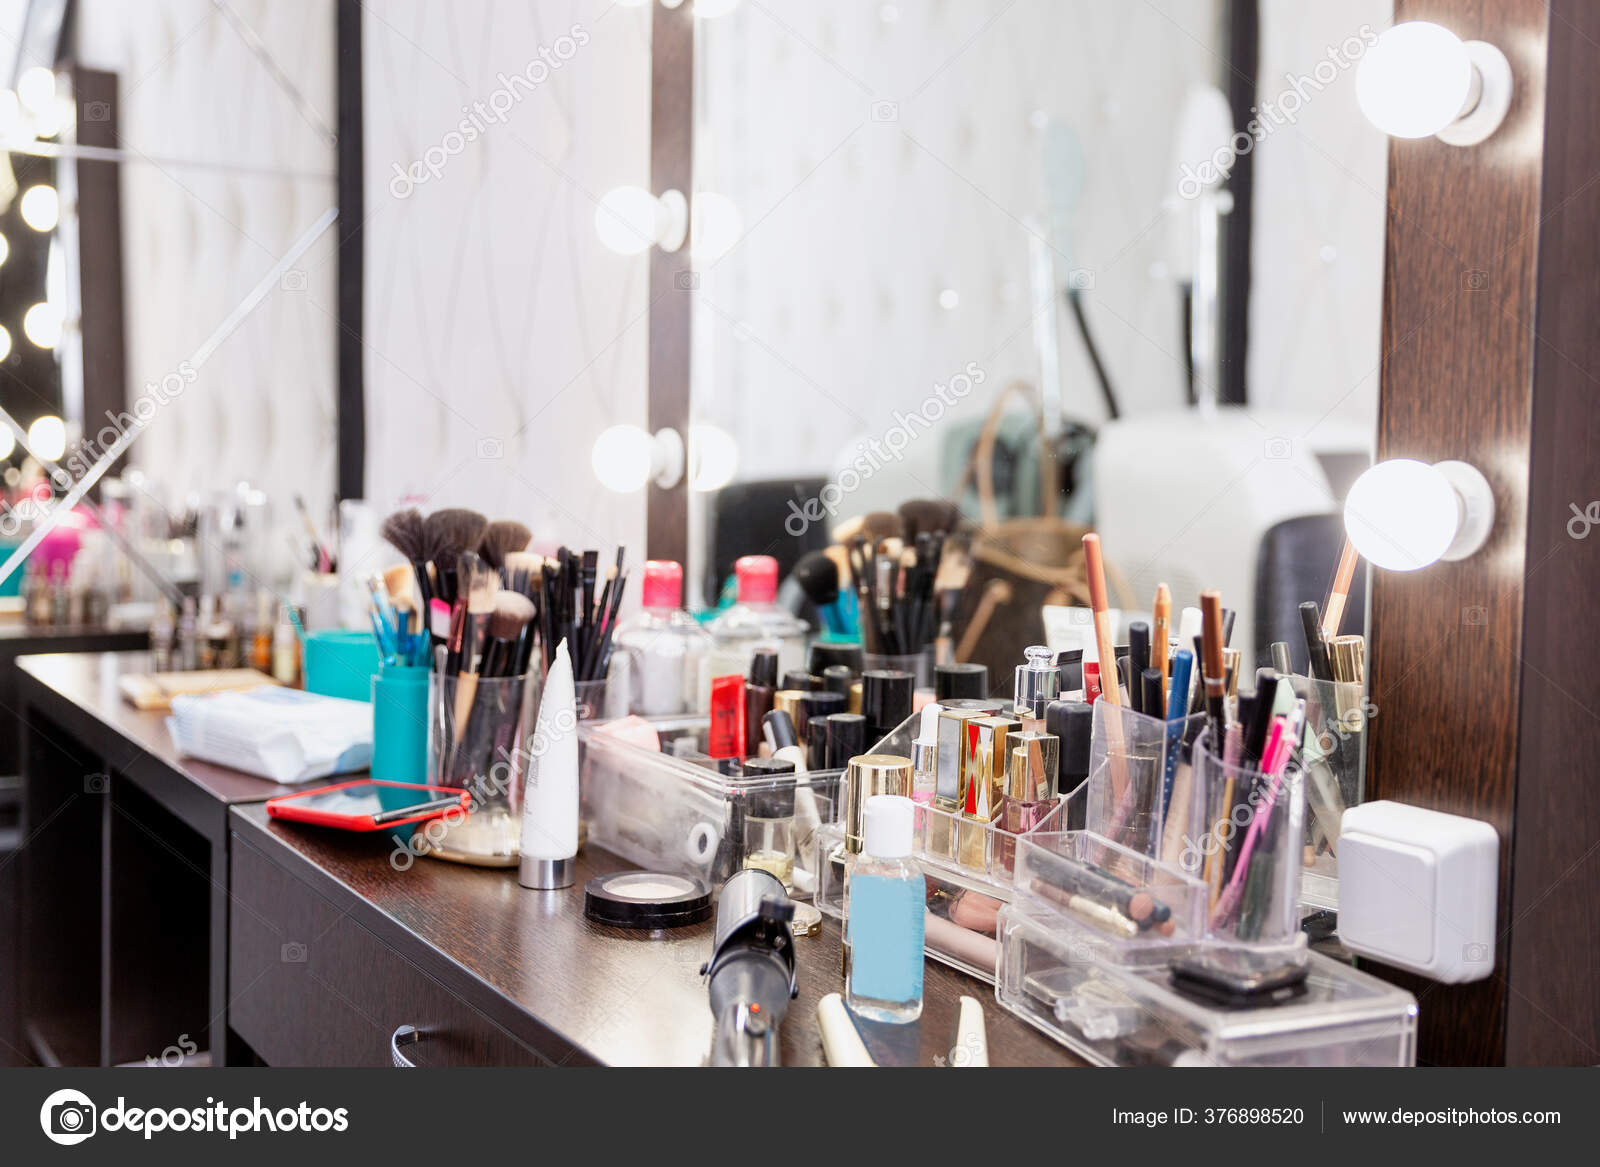 Dressing table in a beauty salon with lots of cosmetics. 6